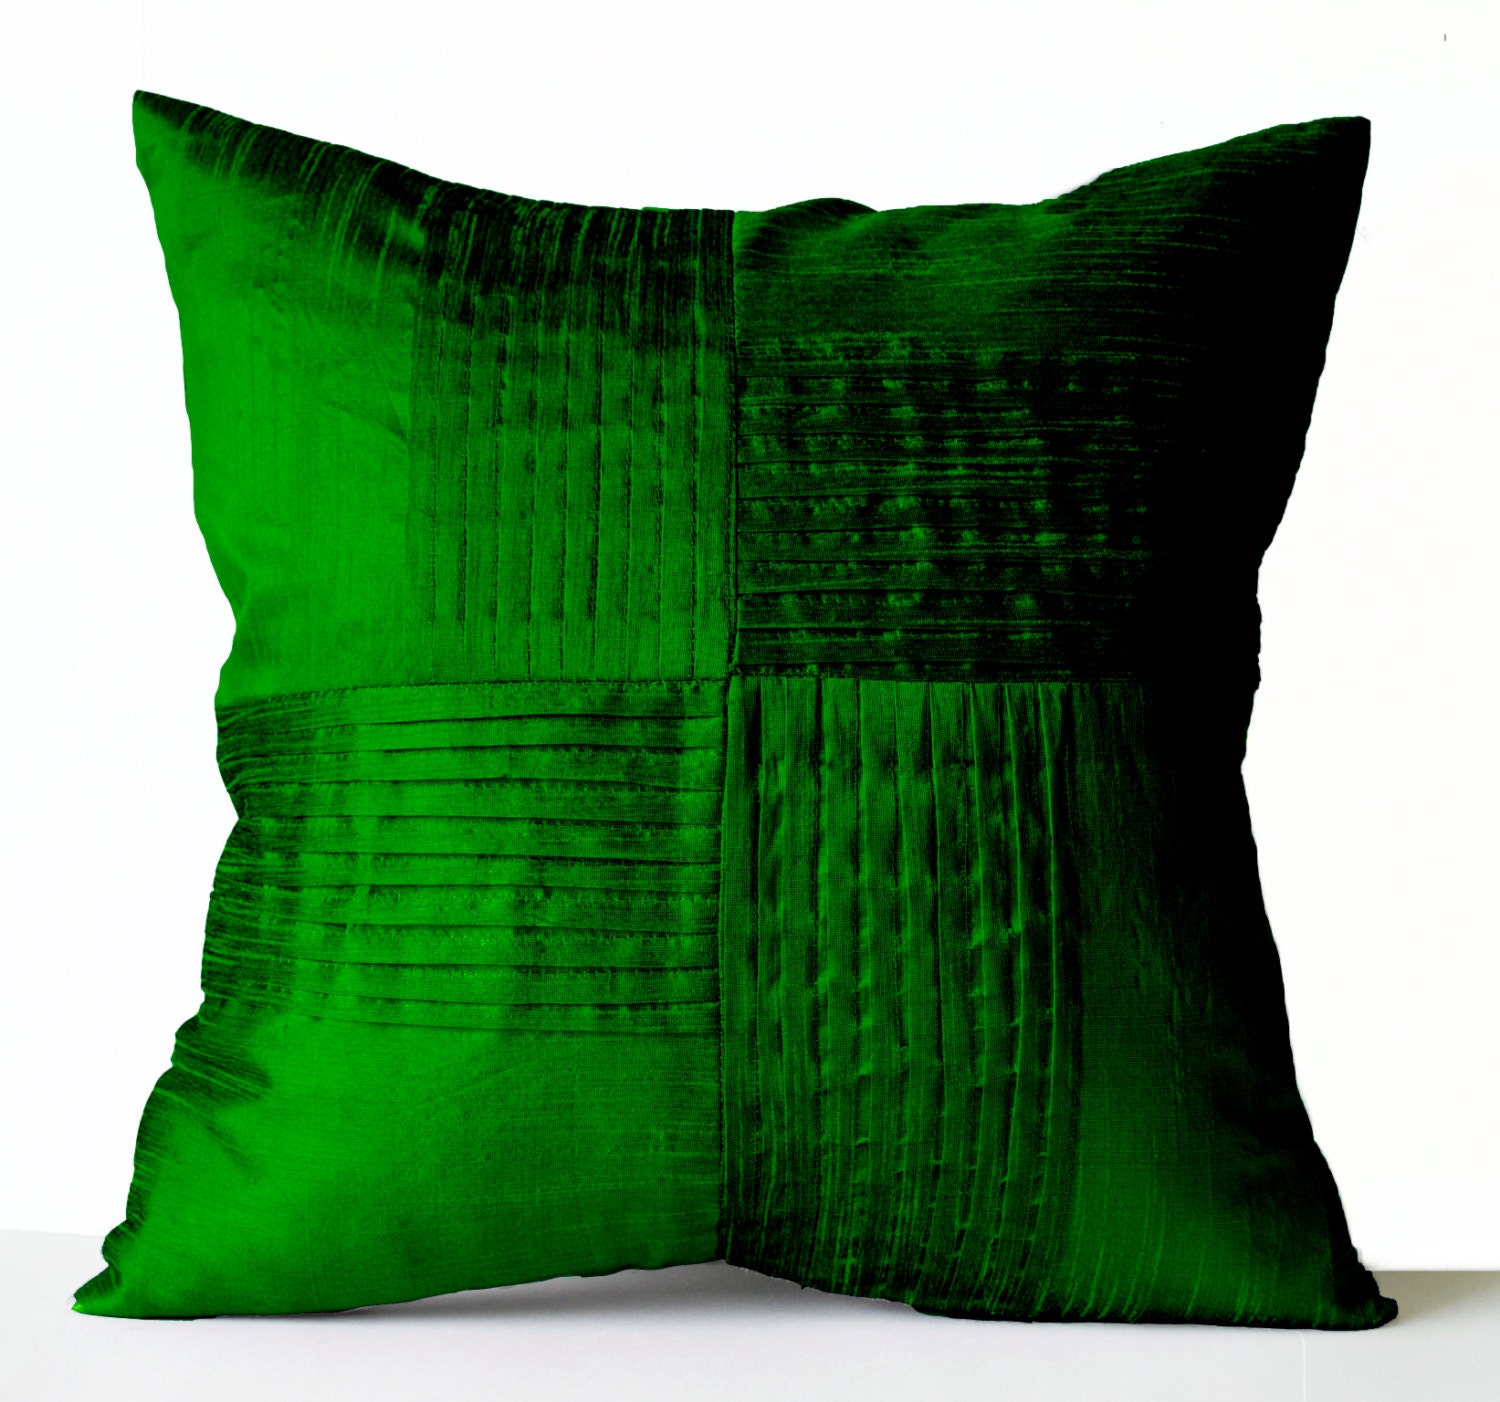 Decorative Pillows For Bed Green : Throw Pillow Cover Emerald Green Silk Decorative Pillow Case